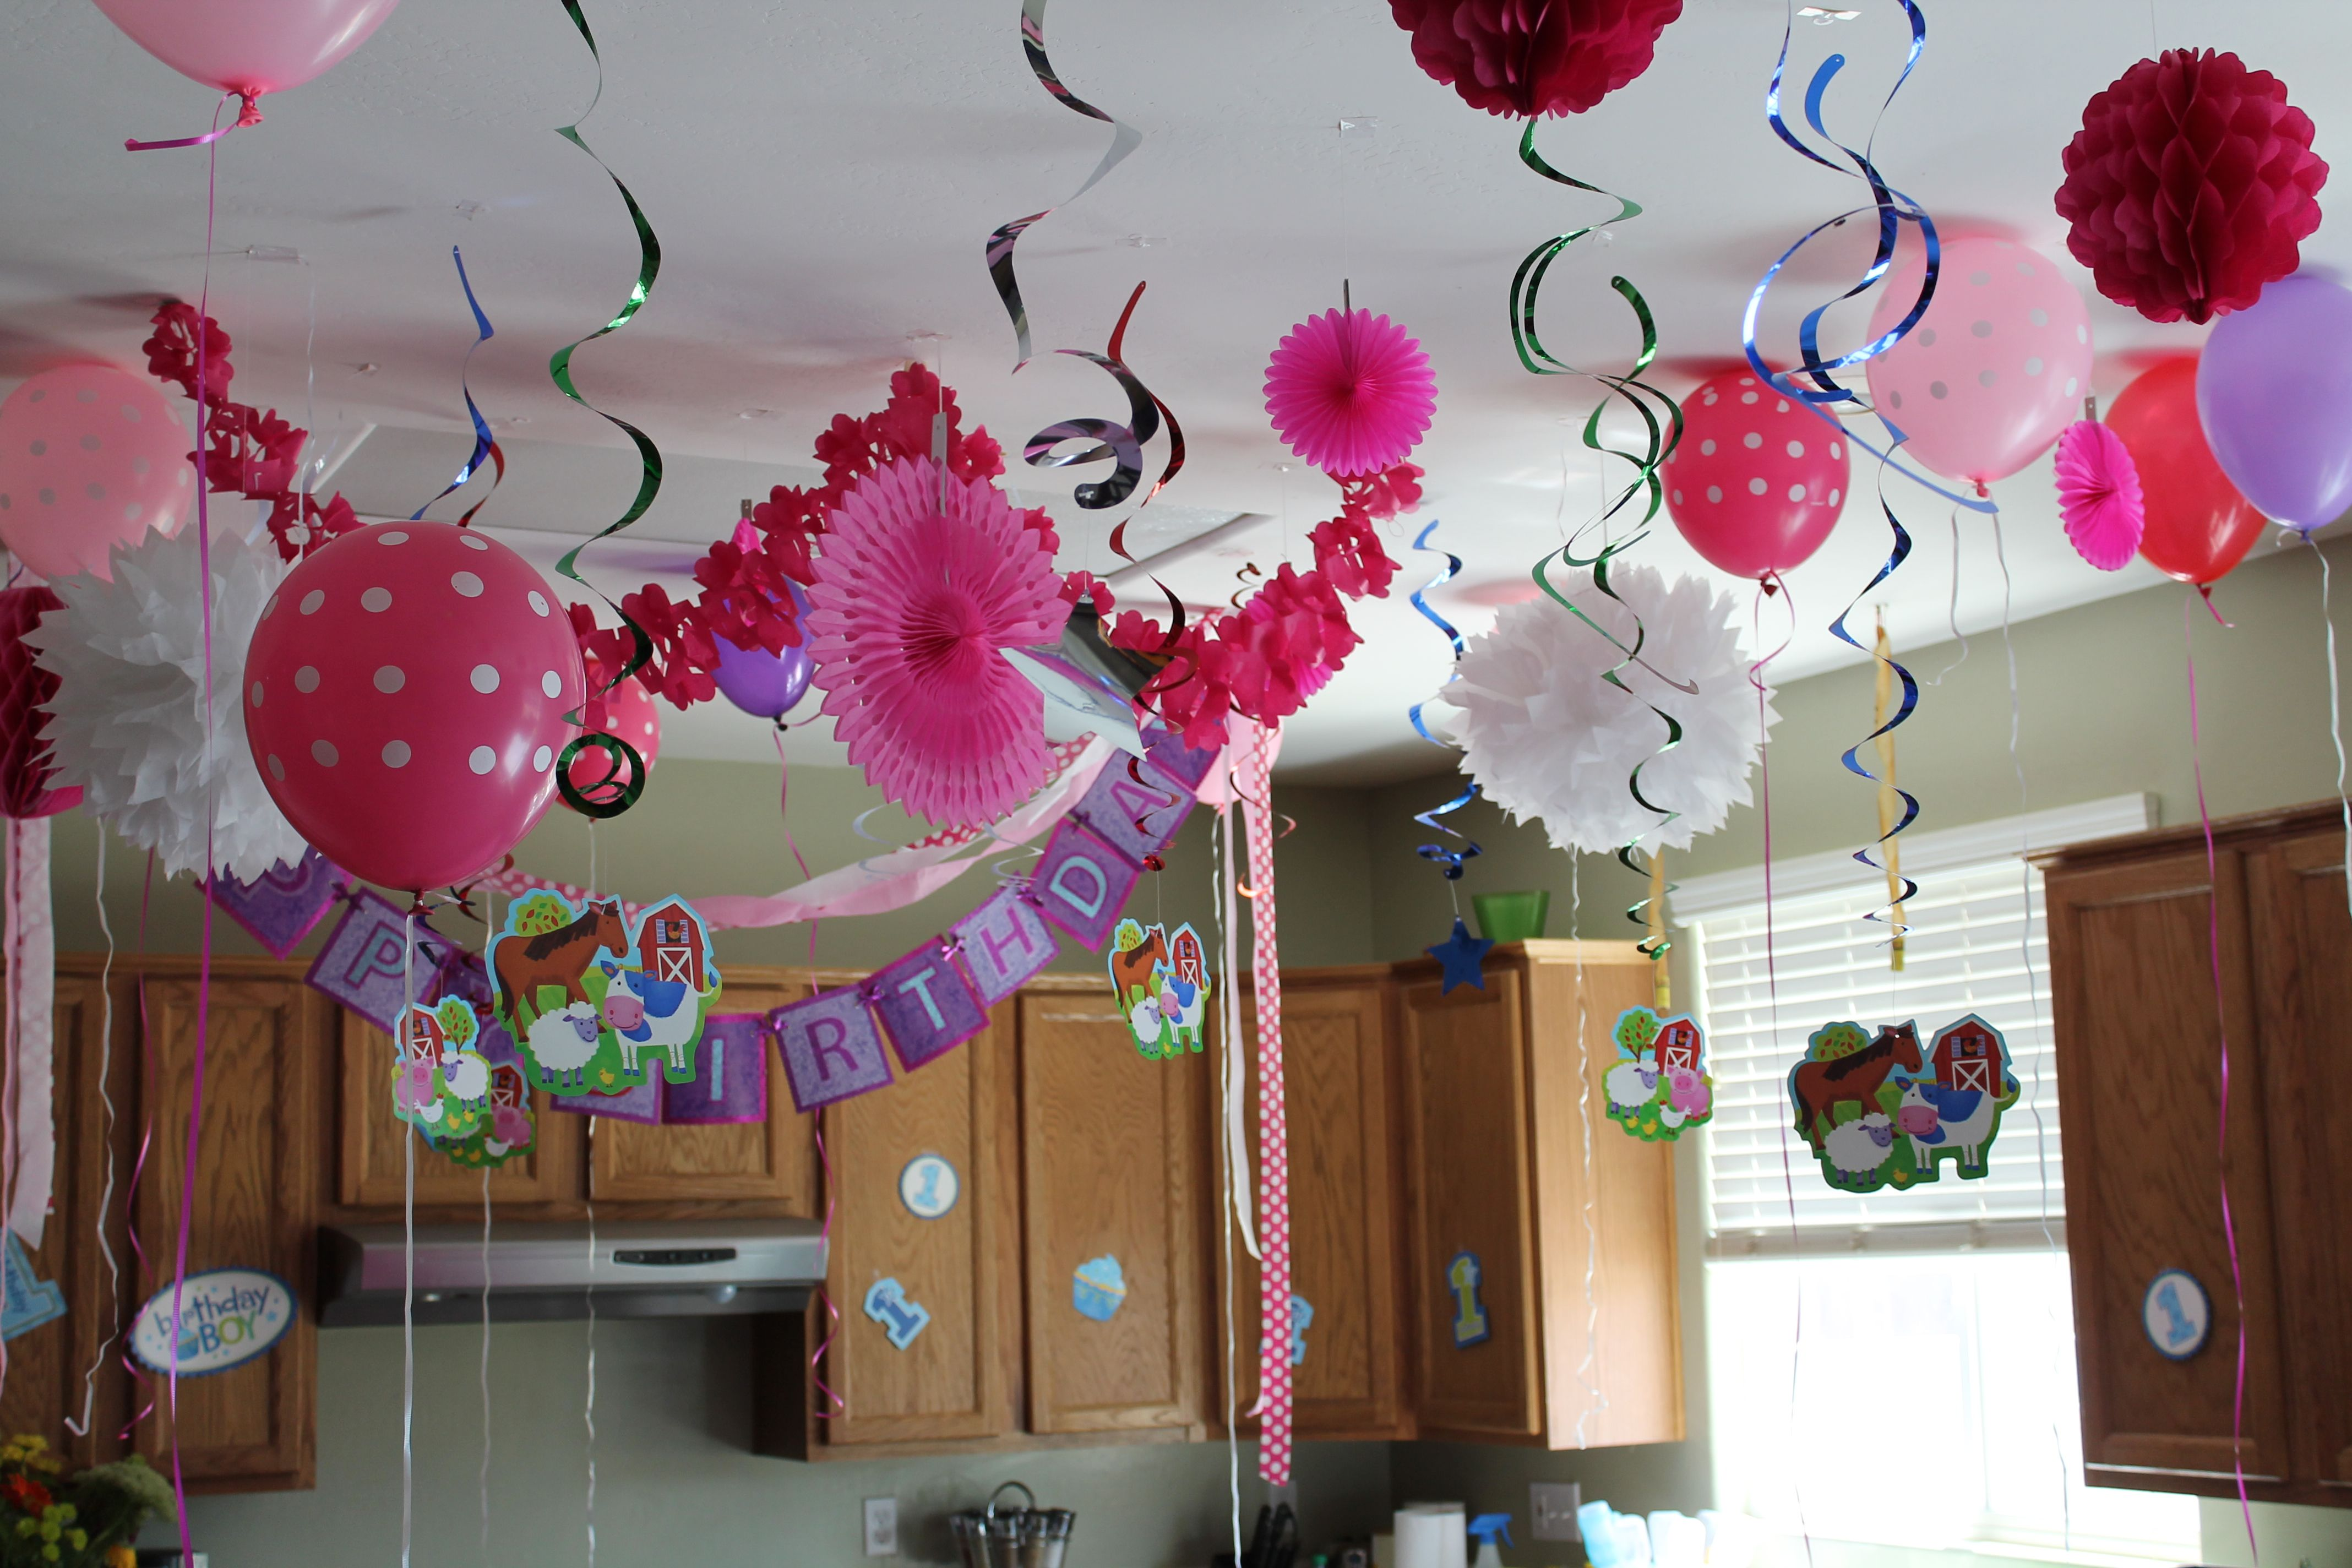 Pin By Athina Hanxhara On Operation Summer Solstice Birthday Decorations At Home Simple Birthday Decorations Diy Birthday Decorations